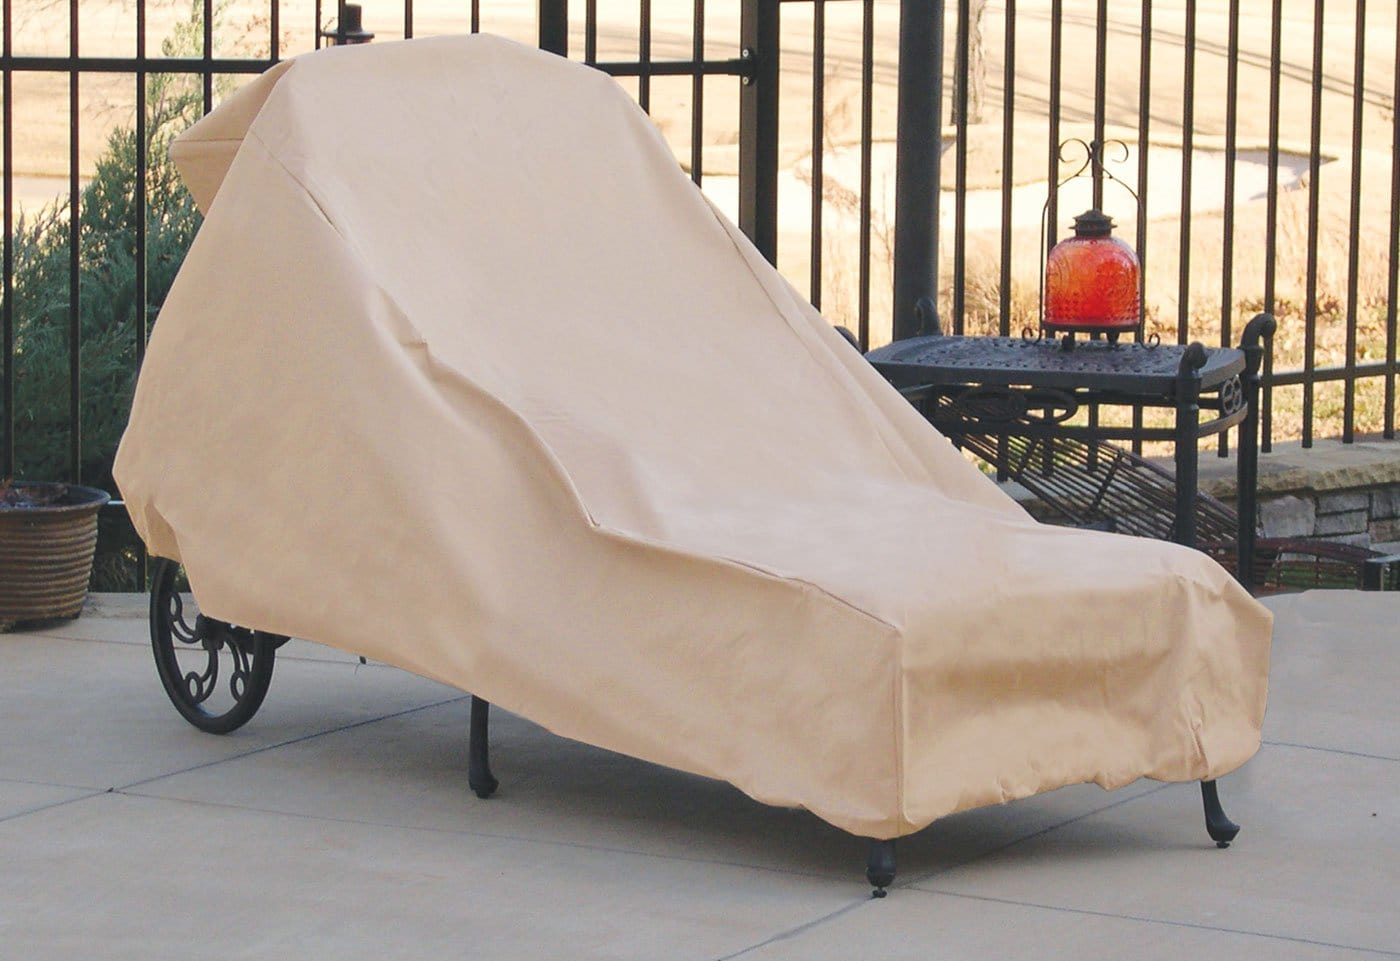 Hearth and Garden Large Lounge Chair Cover - Taupe / Taupe